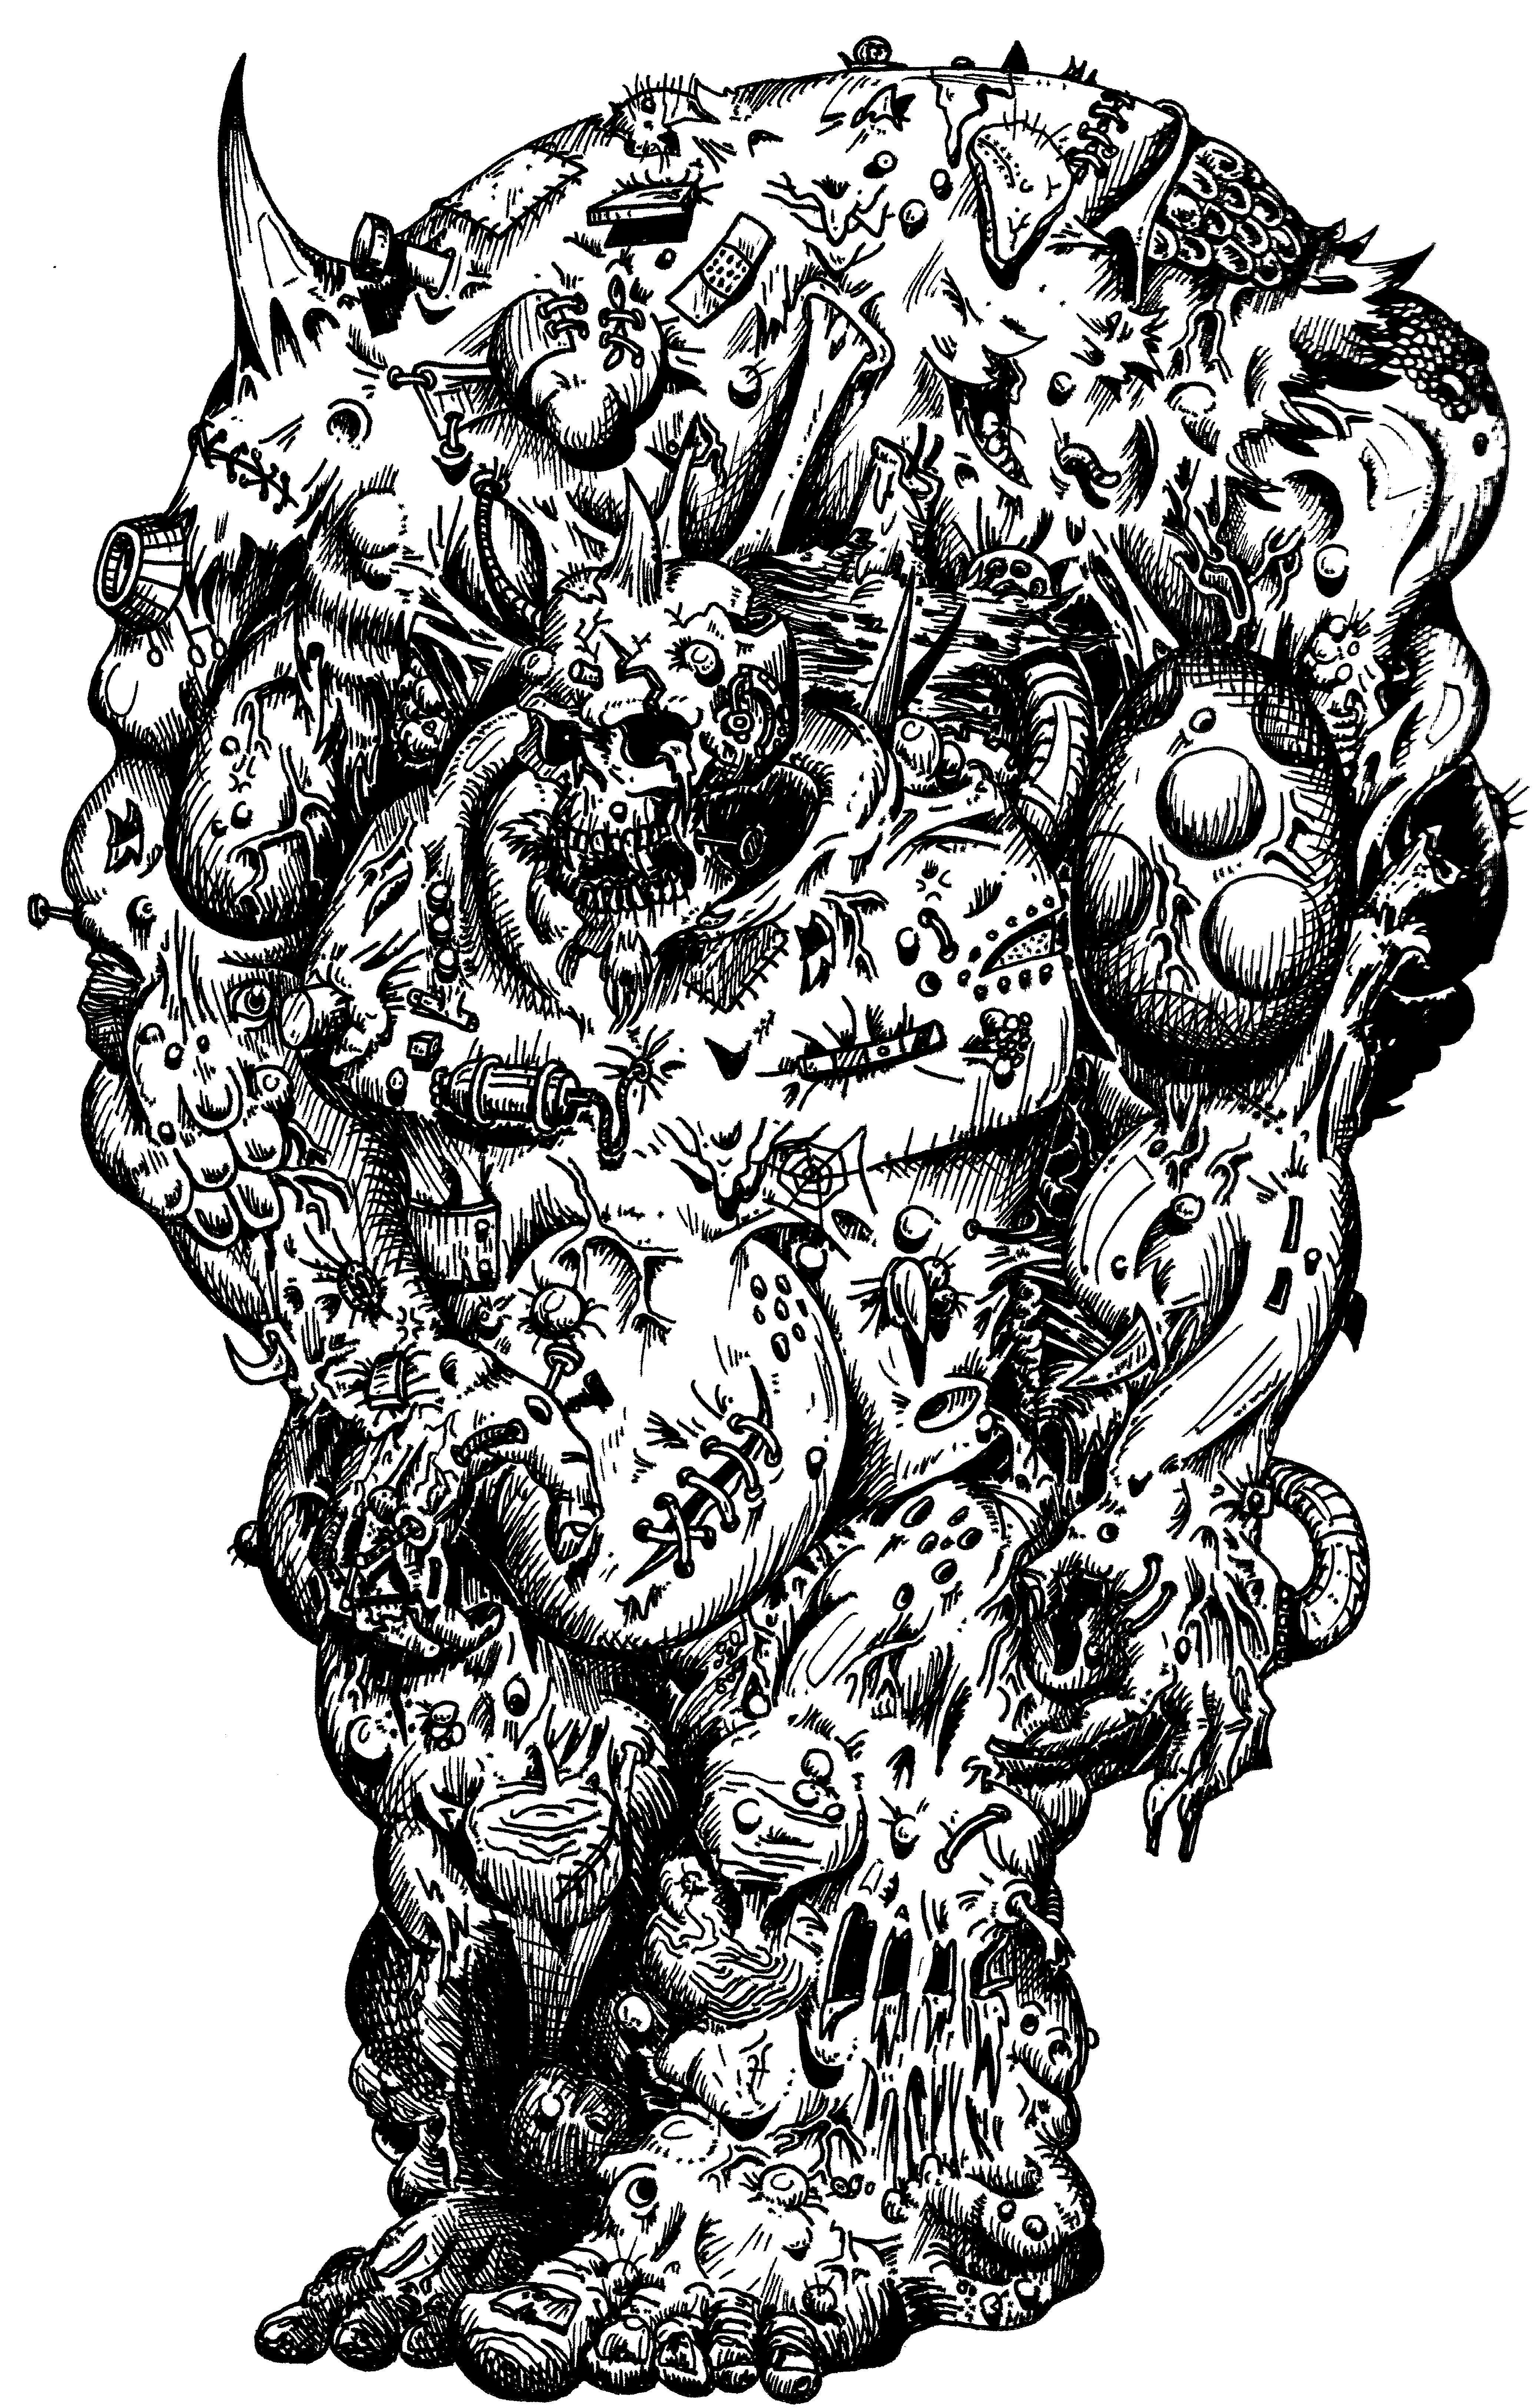 Artwork, Daemons, Drawing, Great Unclean One, Nurgle, Old, School, Style